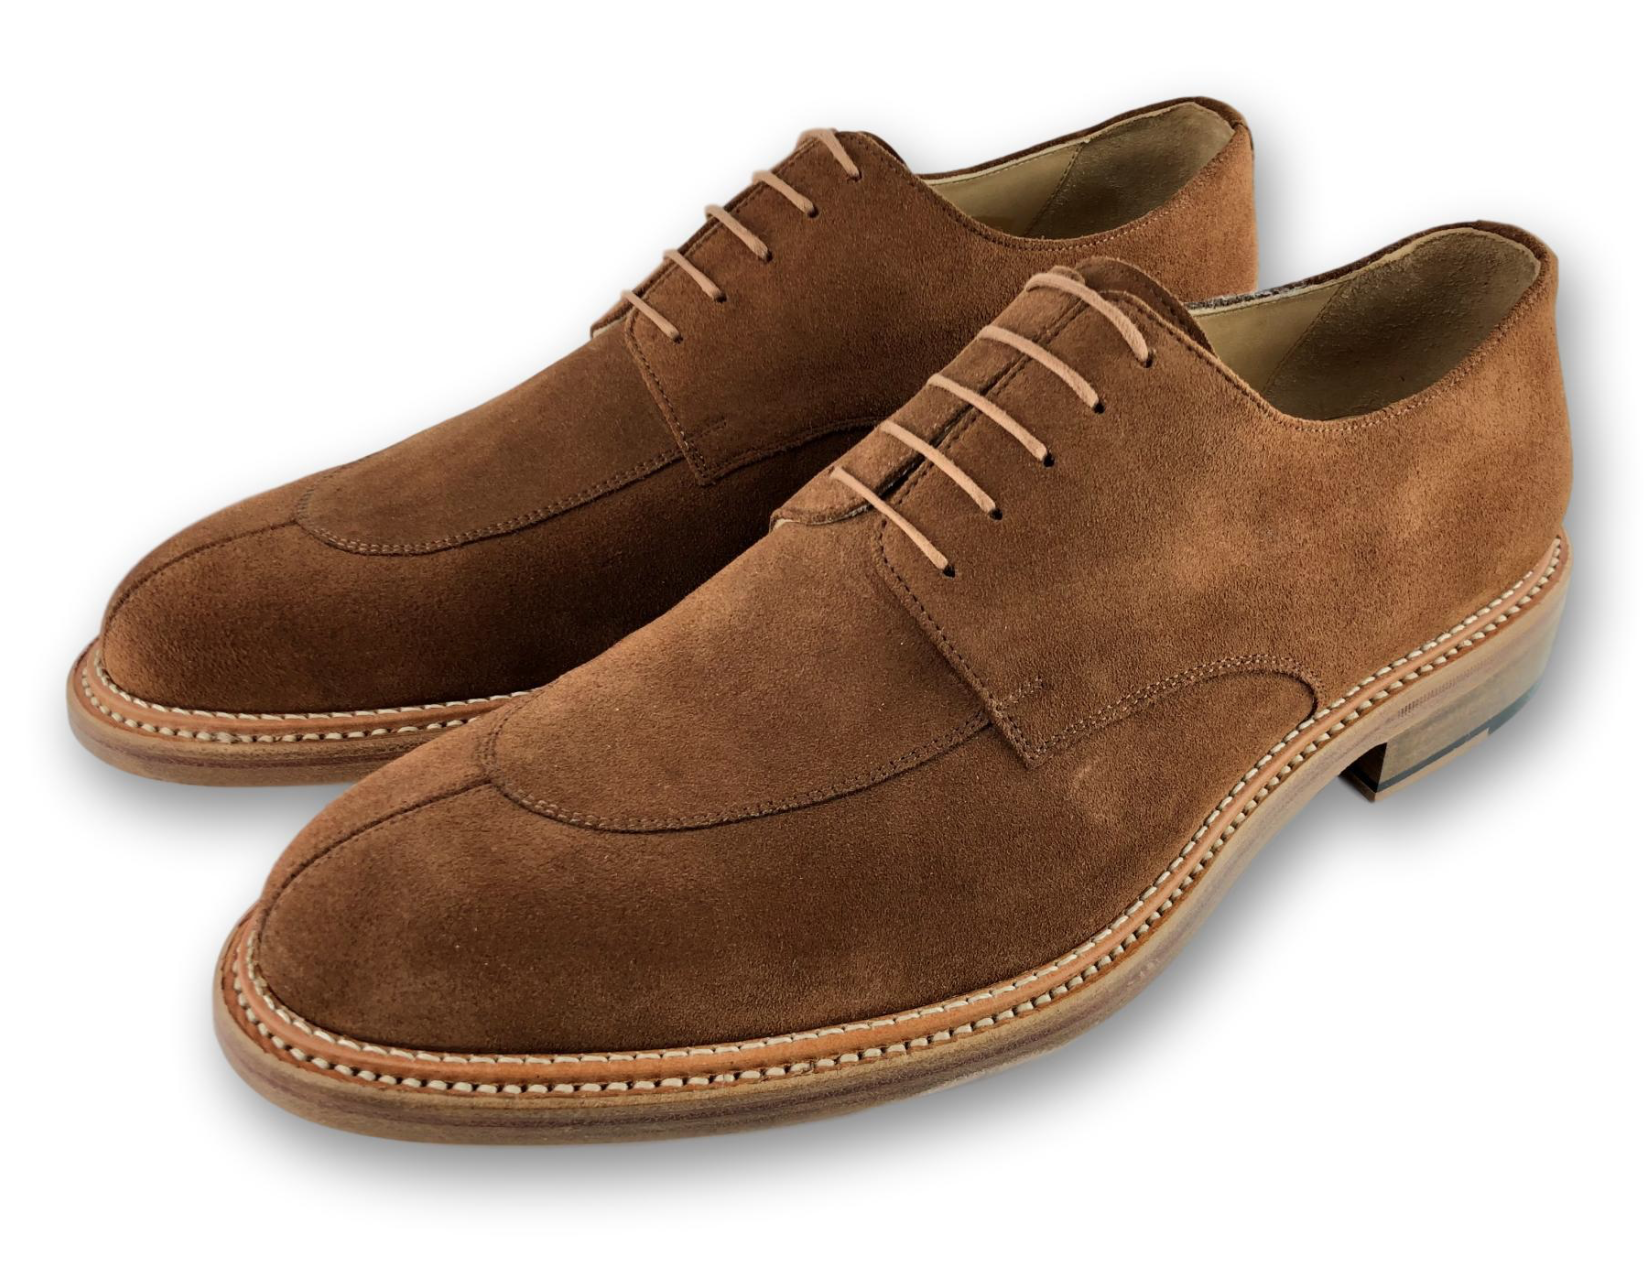 KNOXVILLE - DOUBLE STITCHED WELT - GINGER SUEDE